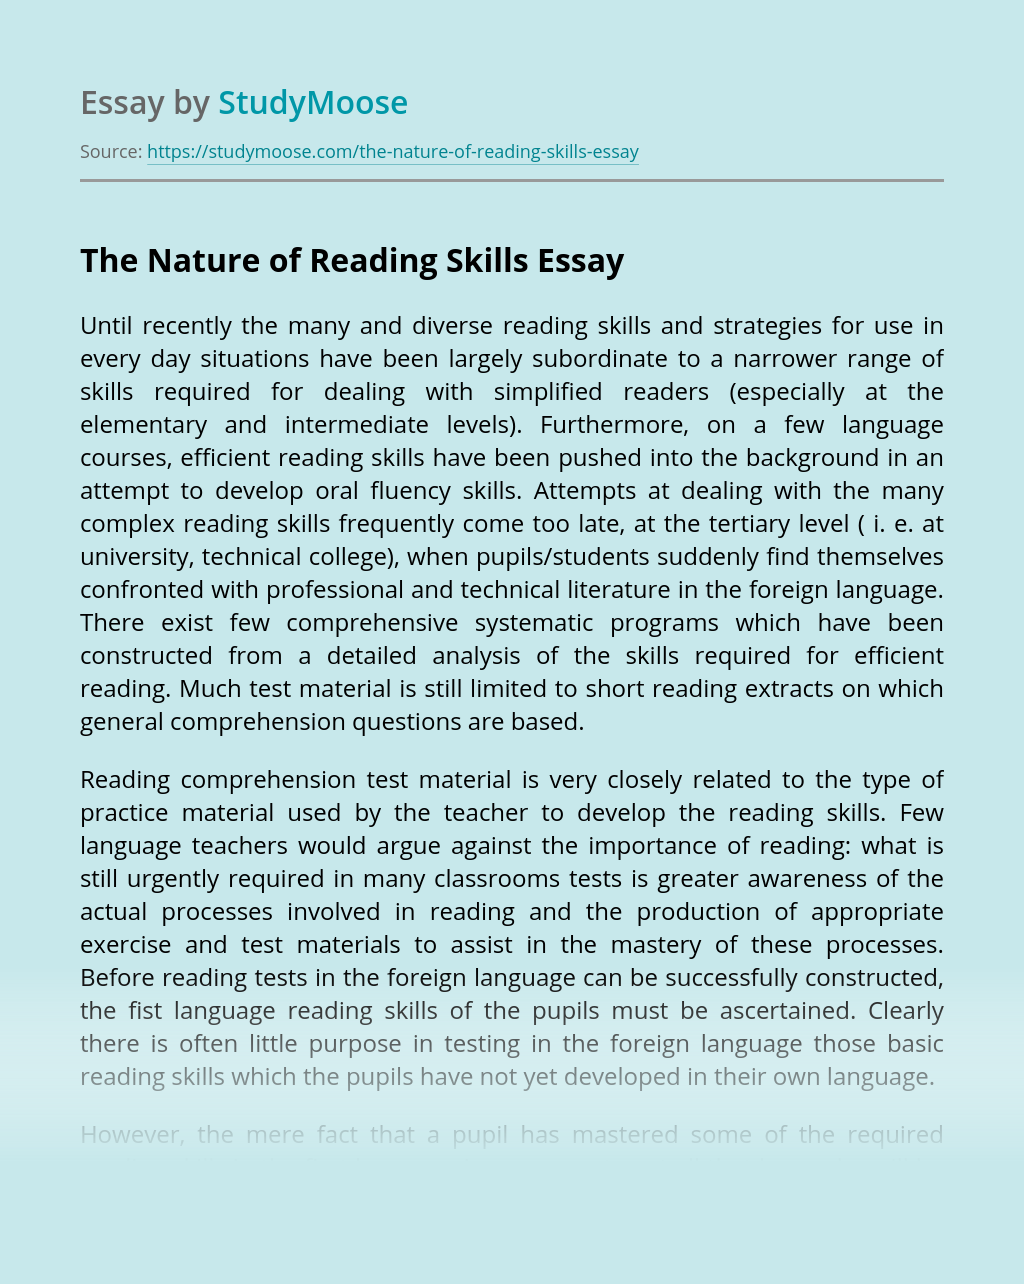 The Nature of Reading Skills